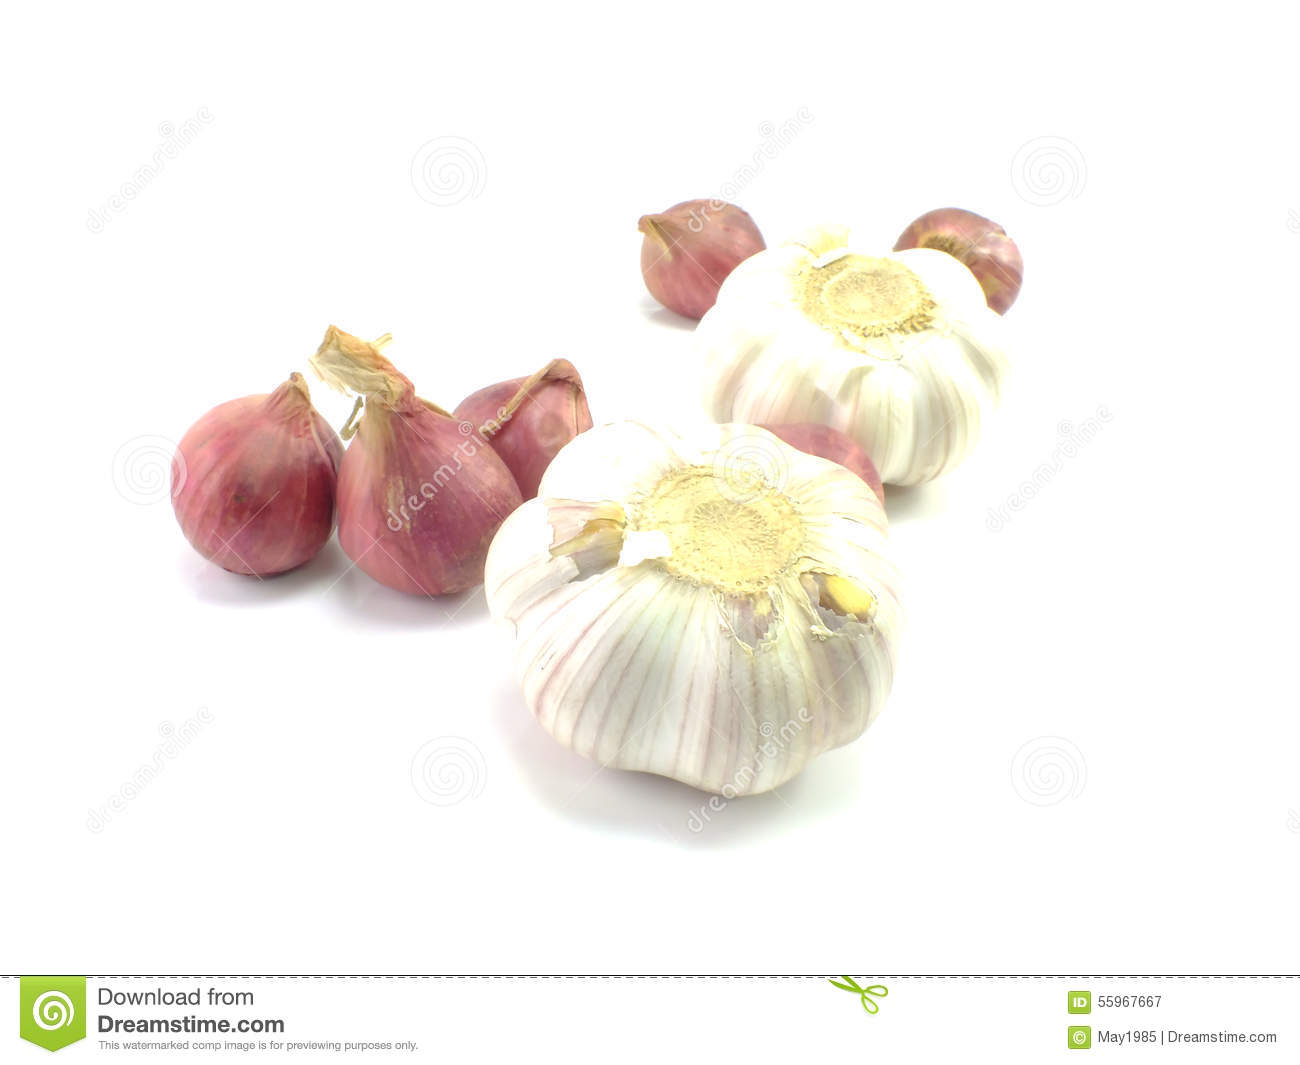 Red Onion Illustration Red onion and garlice isolated